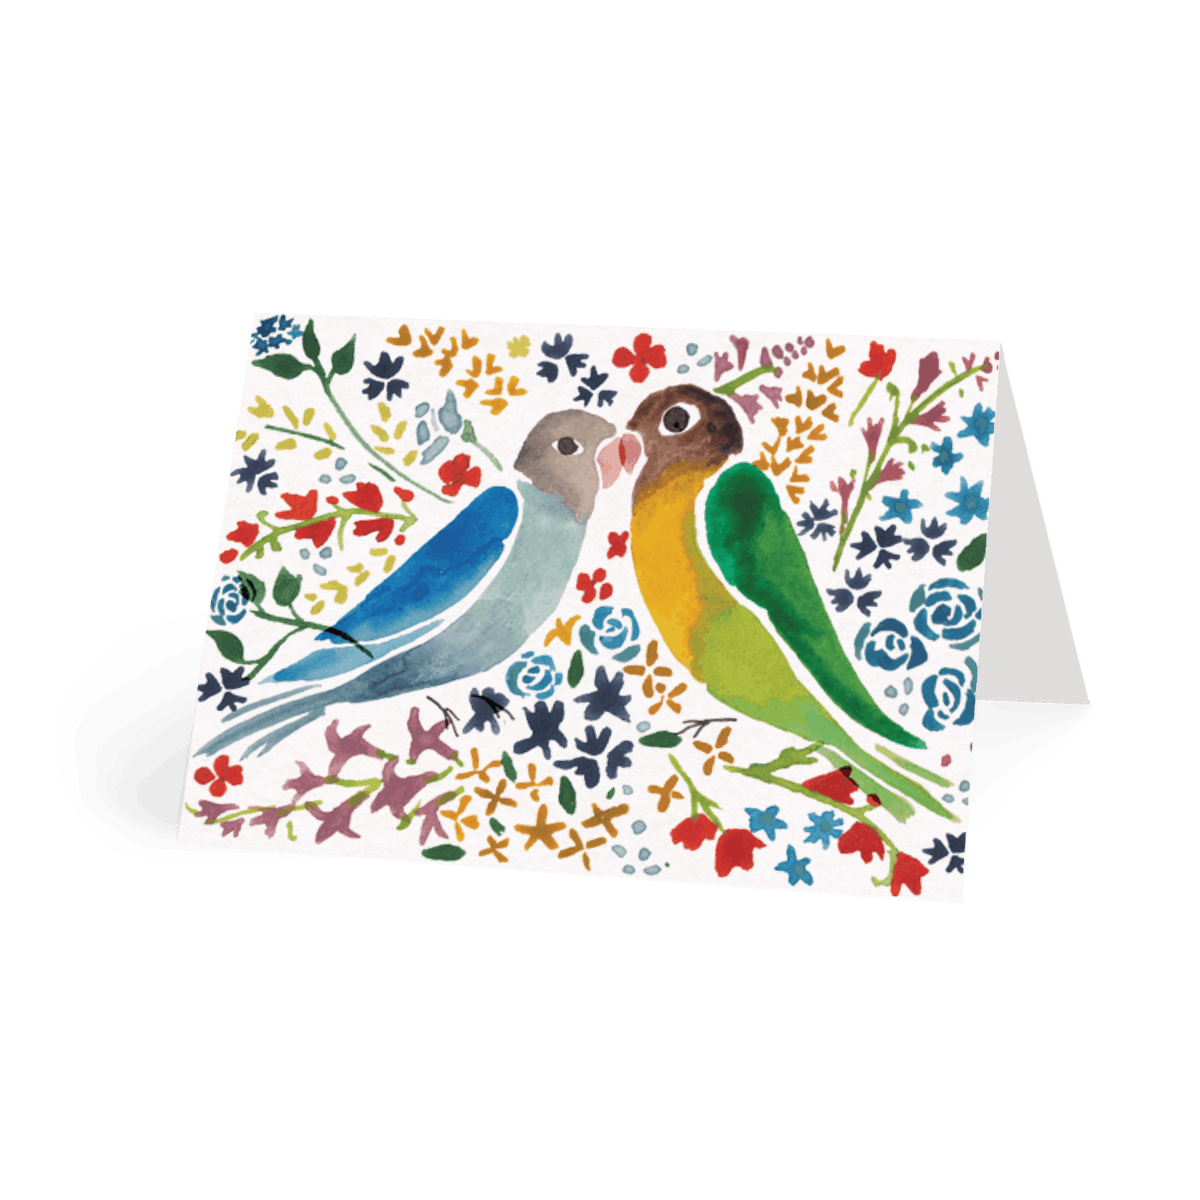 Https%3a%2f%2fwww.papier.com%2fproduct image%2f1188%2f14%2flove birds 342 front 1453909720.png?ixlib=rb 1.1